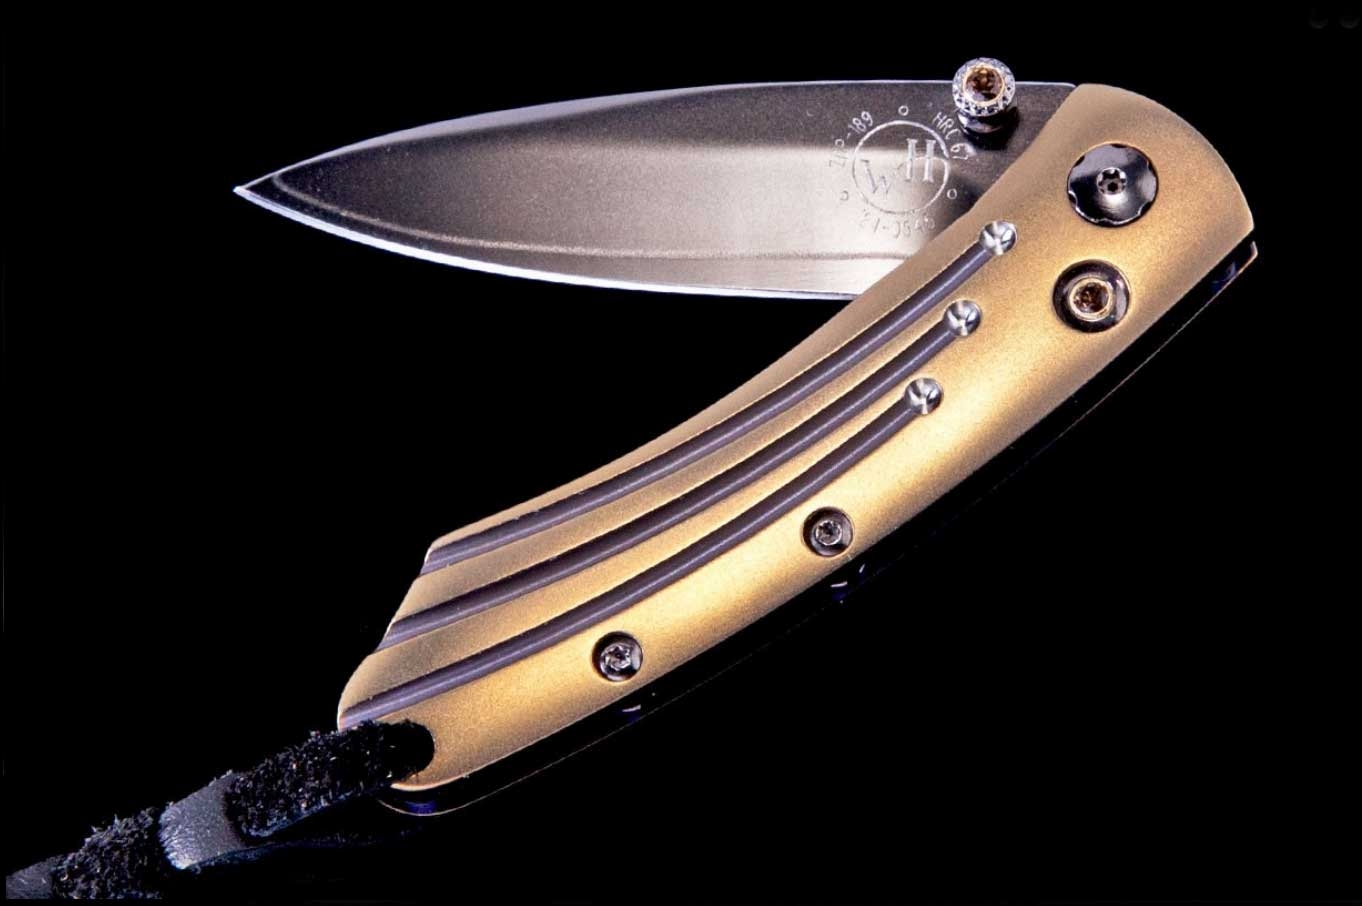 Pikatti Scorch Luxury Pocket Knife - William Henry Knives - Gold Rush Fine Jewelry